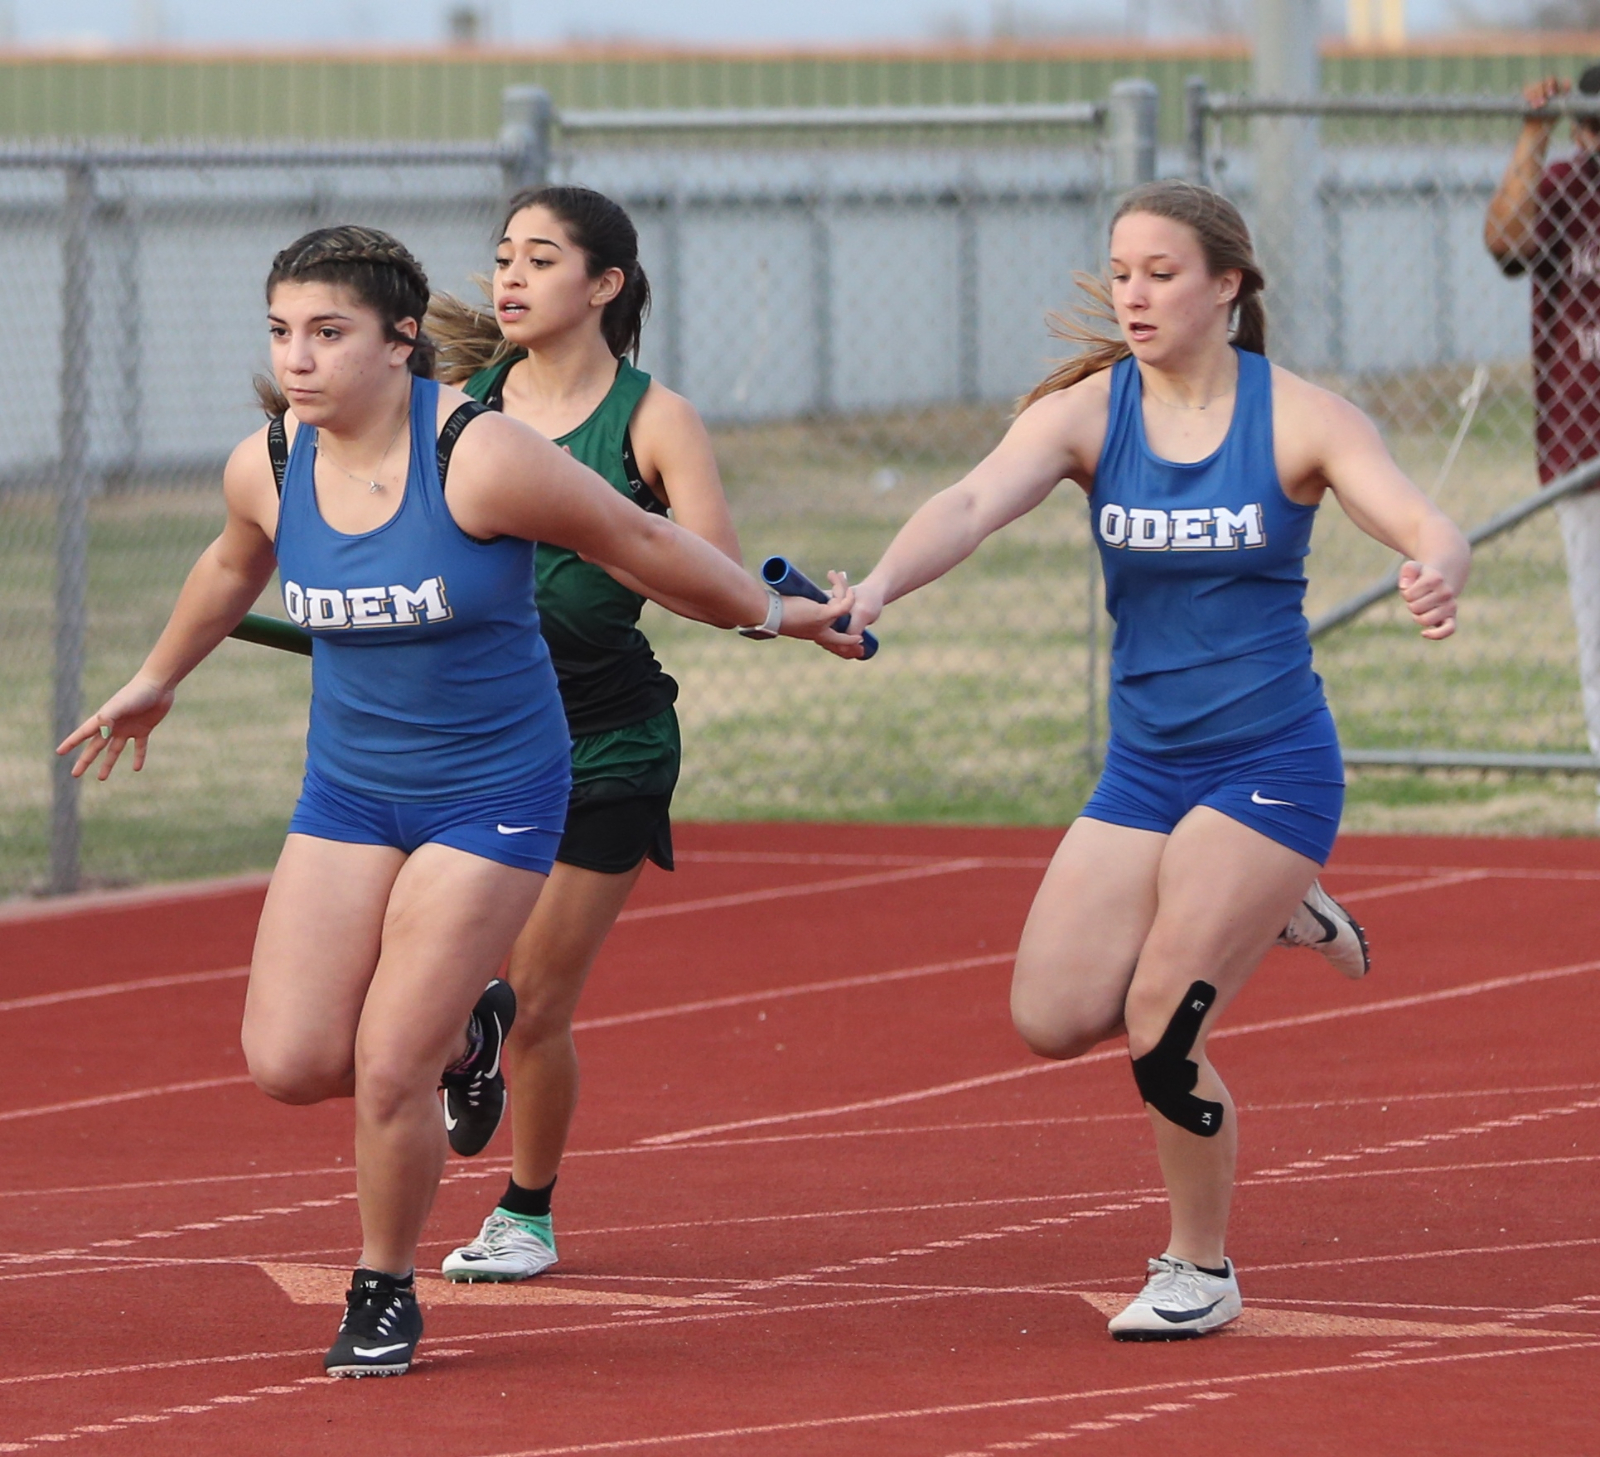 HS Track at Mathis